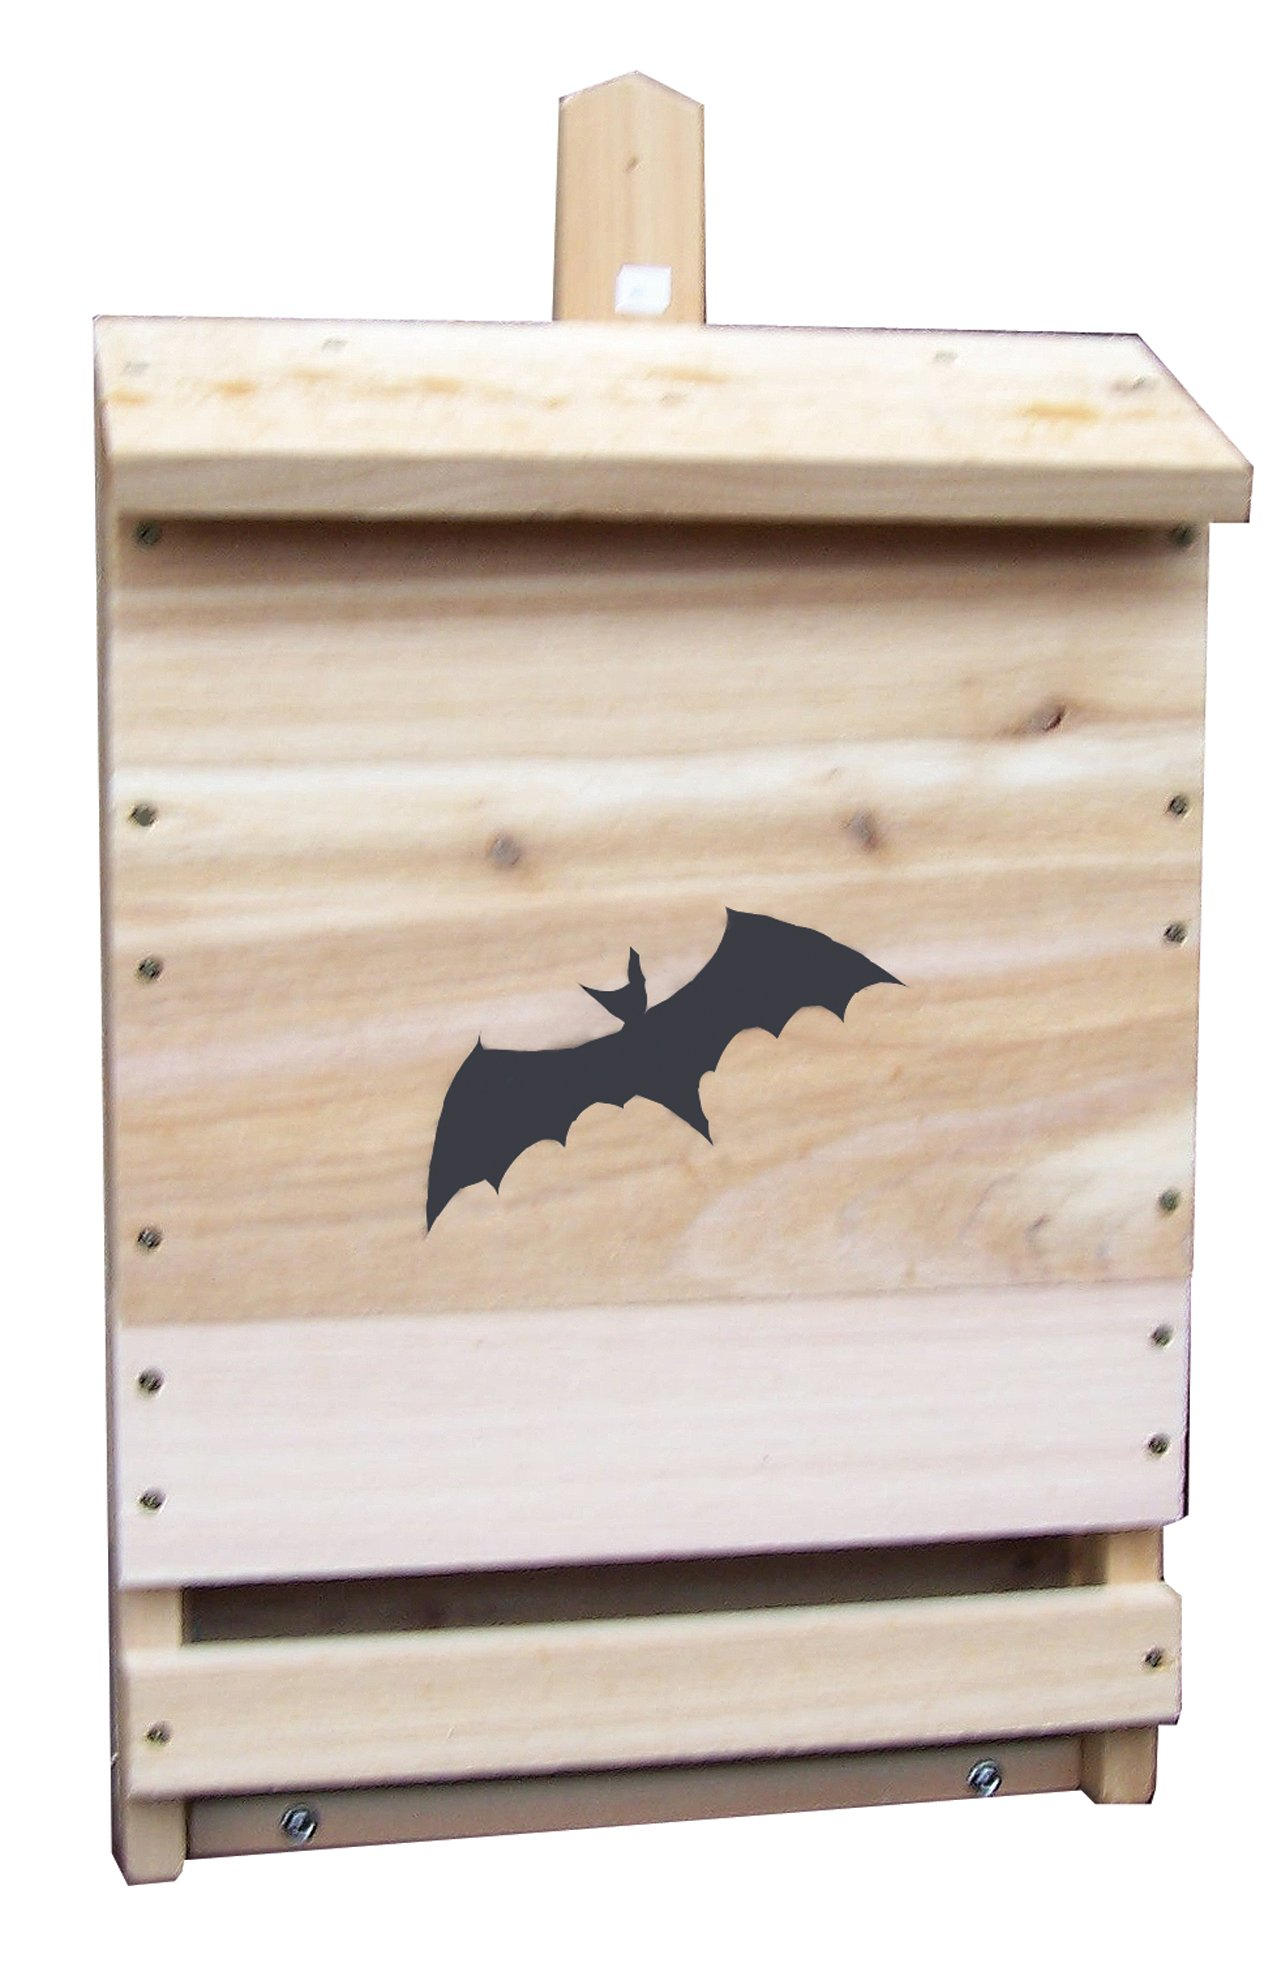 Stovall 3K Single Cell Bat House Kit by Stovall Products